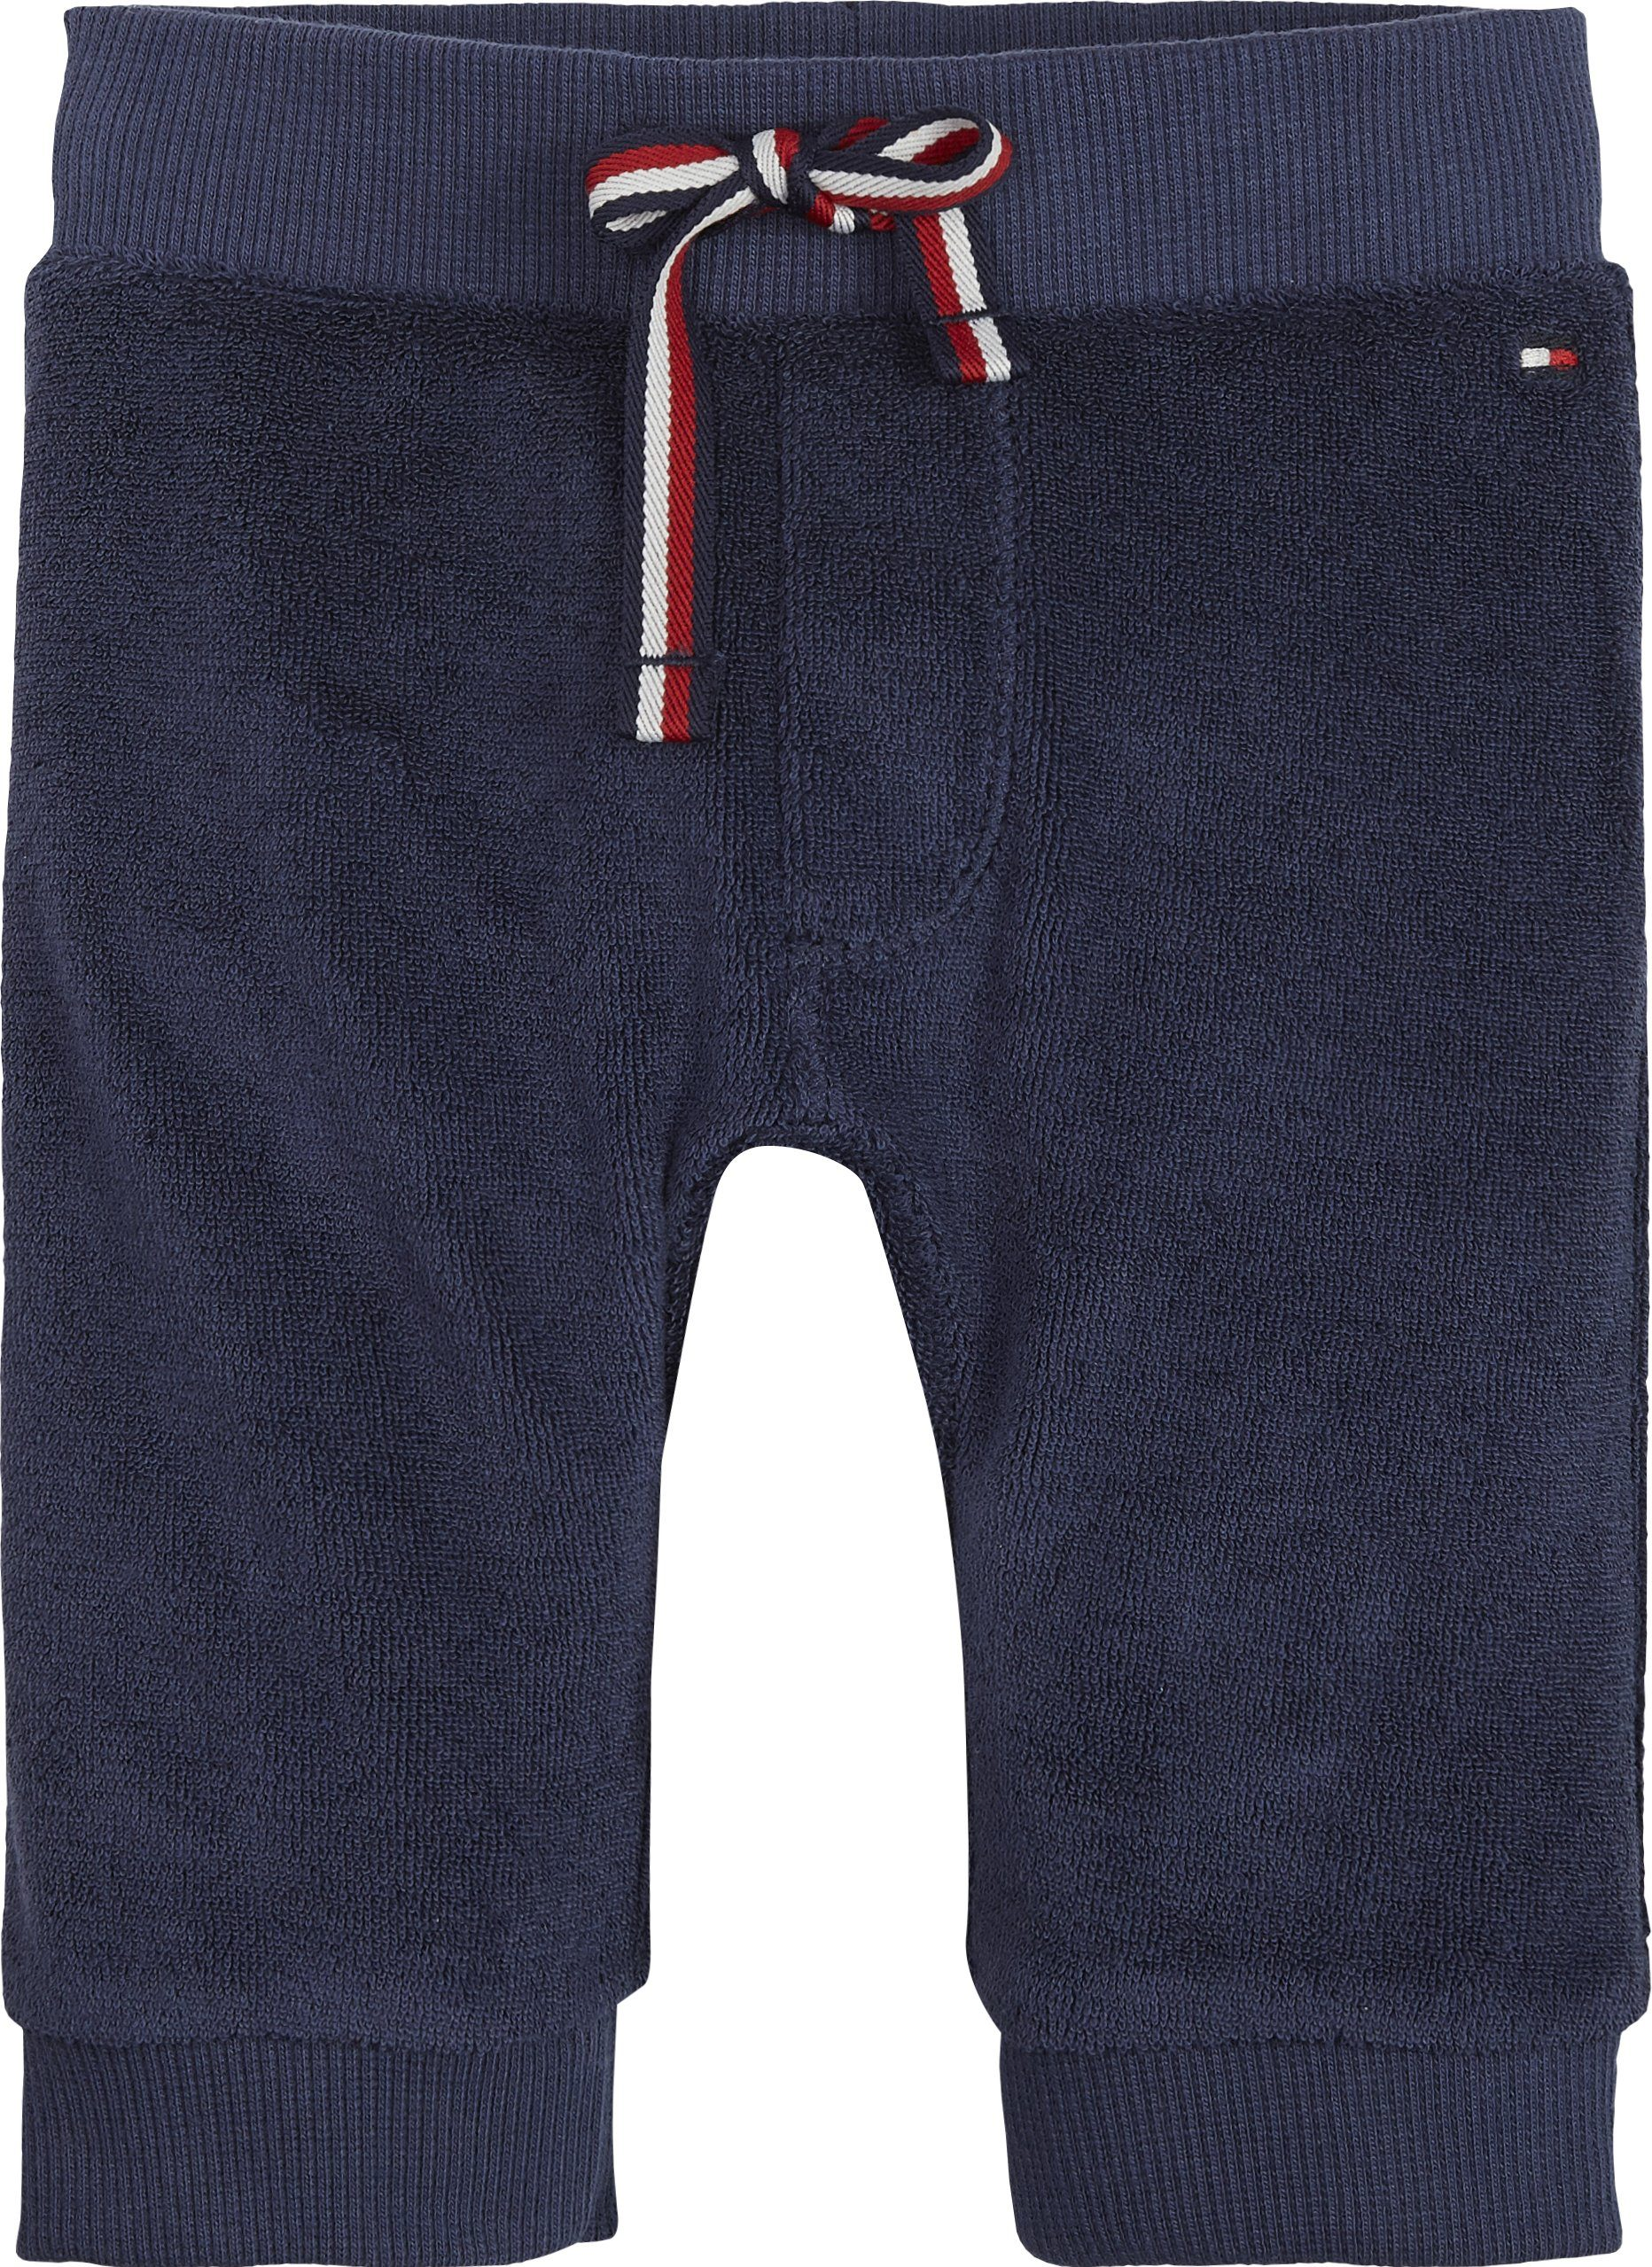 Tommy Hilfiger Hose »BABY TOWELLING SWEATPANTS«